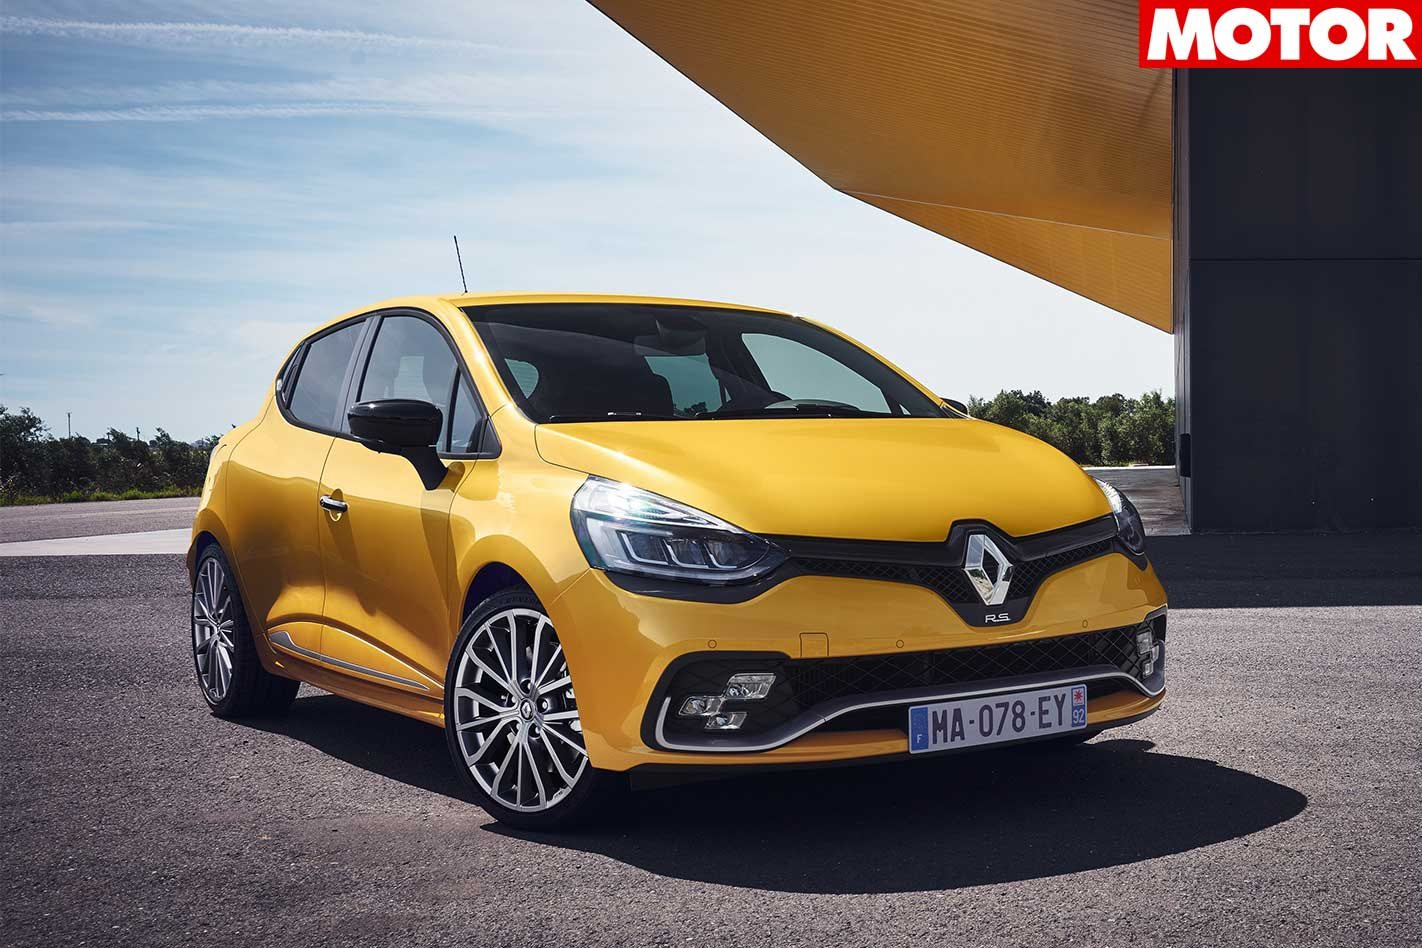 2018 Renault Clio Rs 200 Cup Quick Review